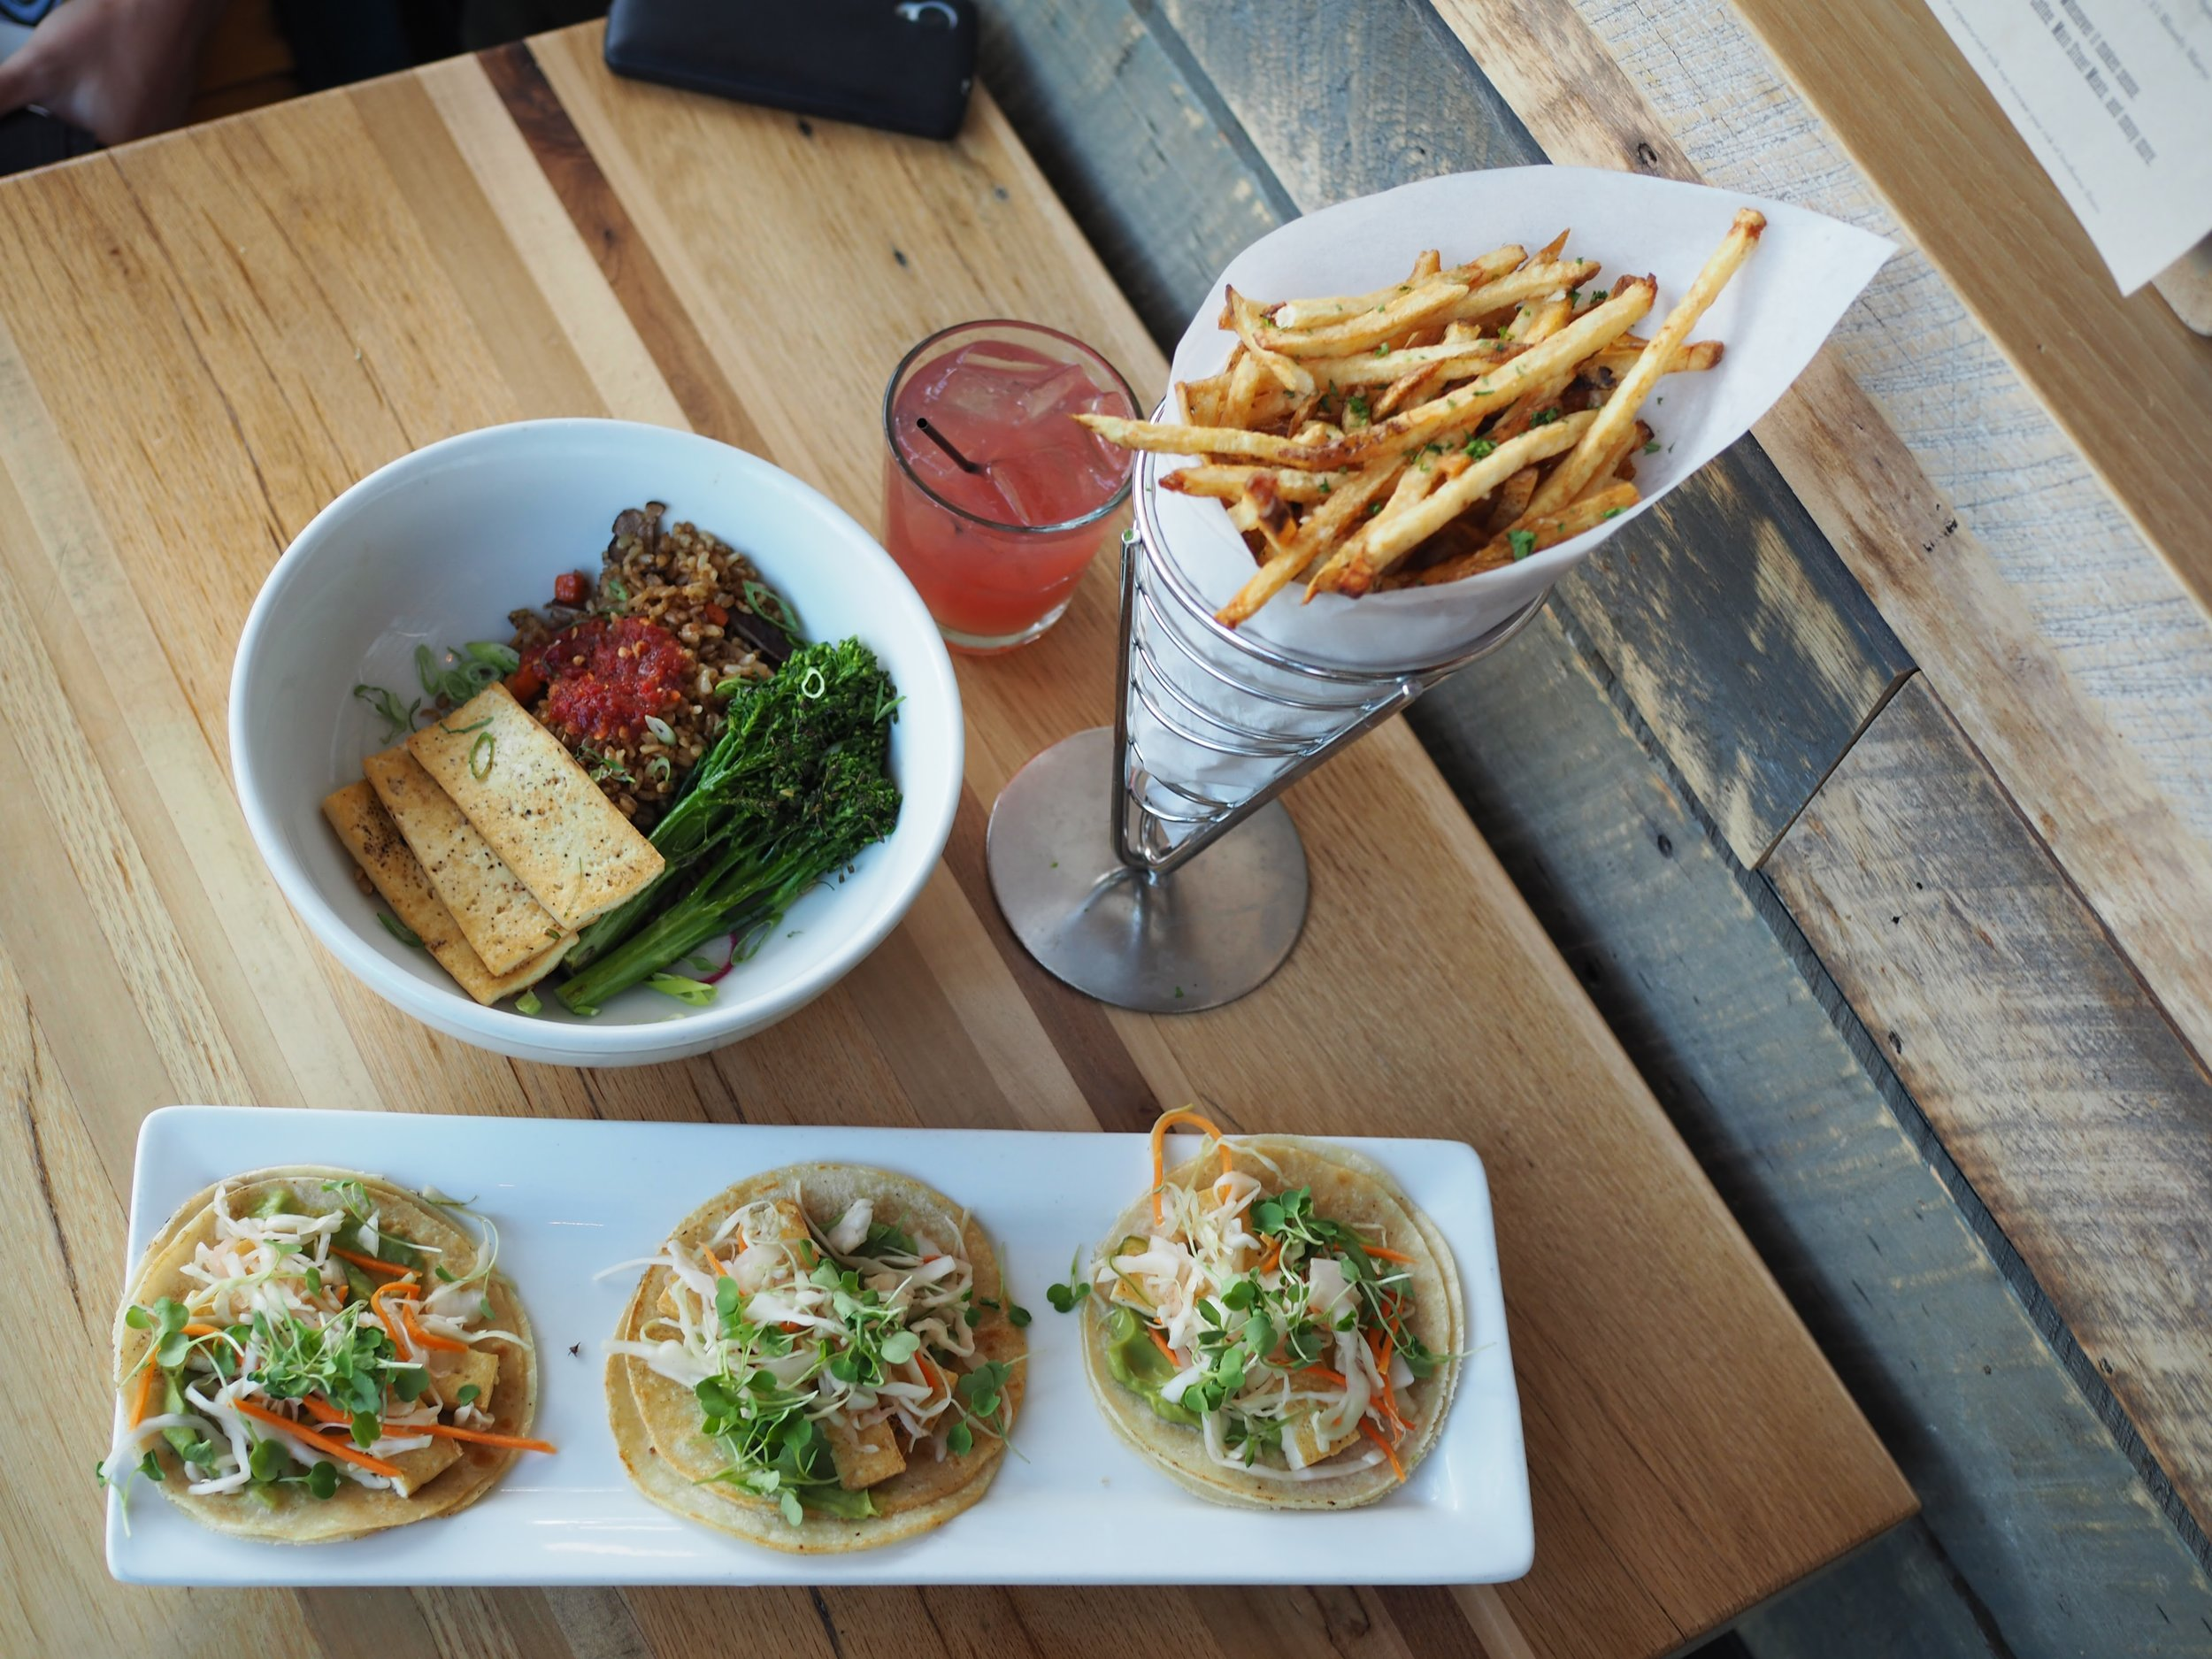 Tofu tacos, Fries, and Fried Rice at The Flying Squirrel